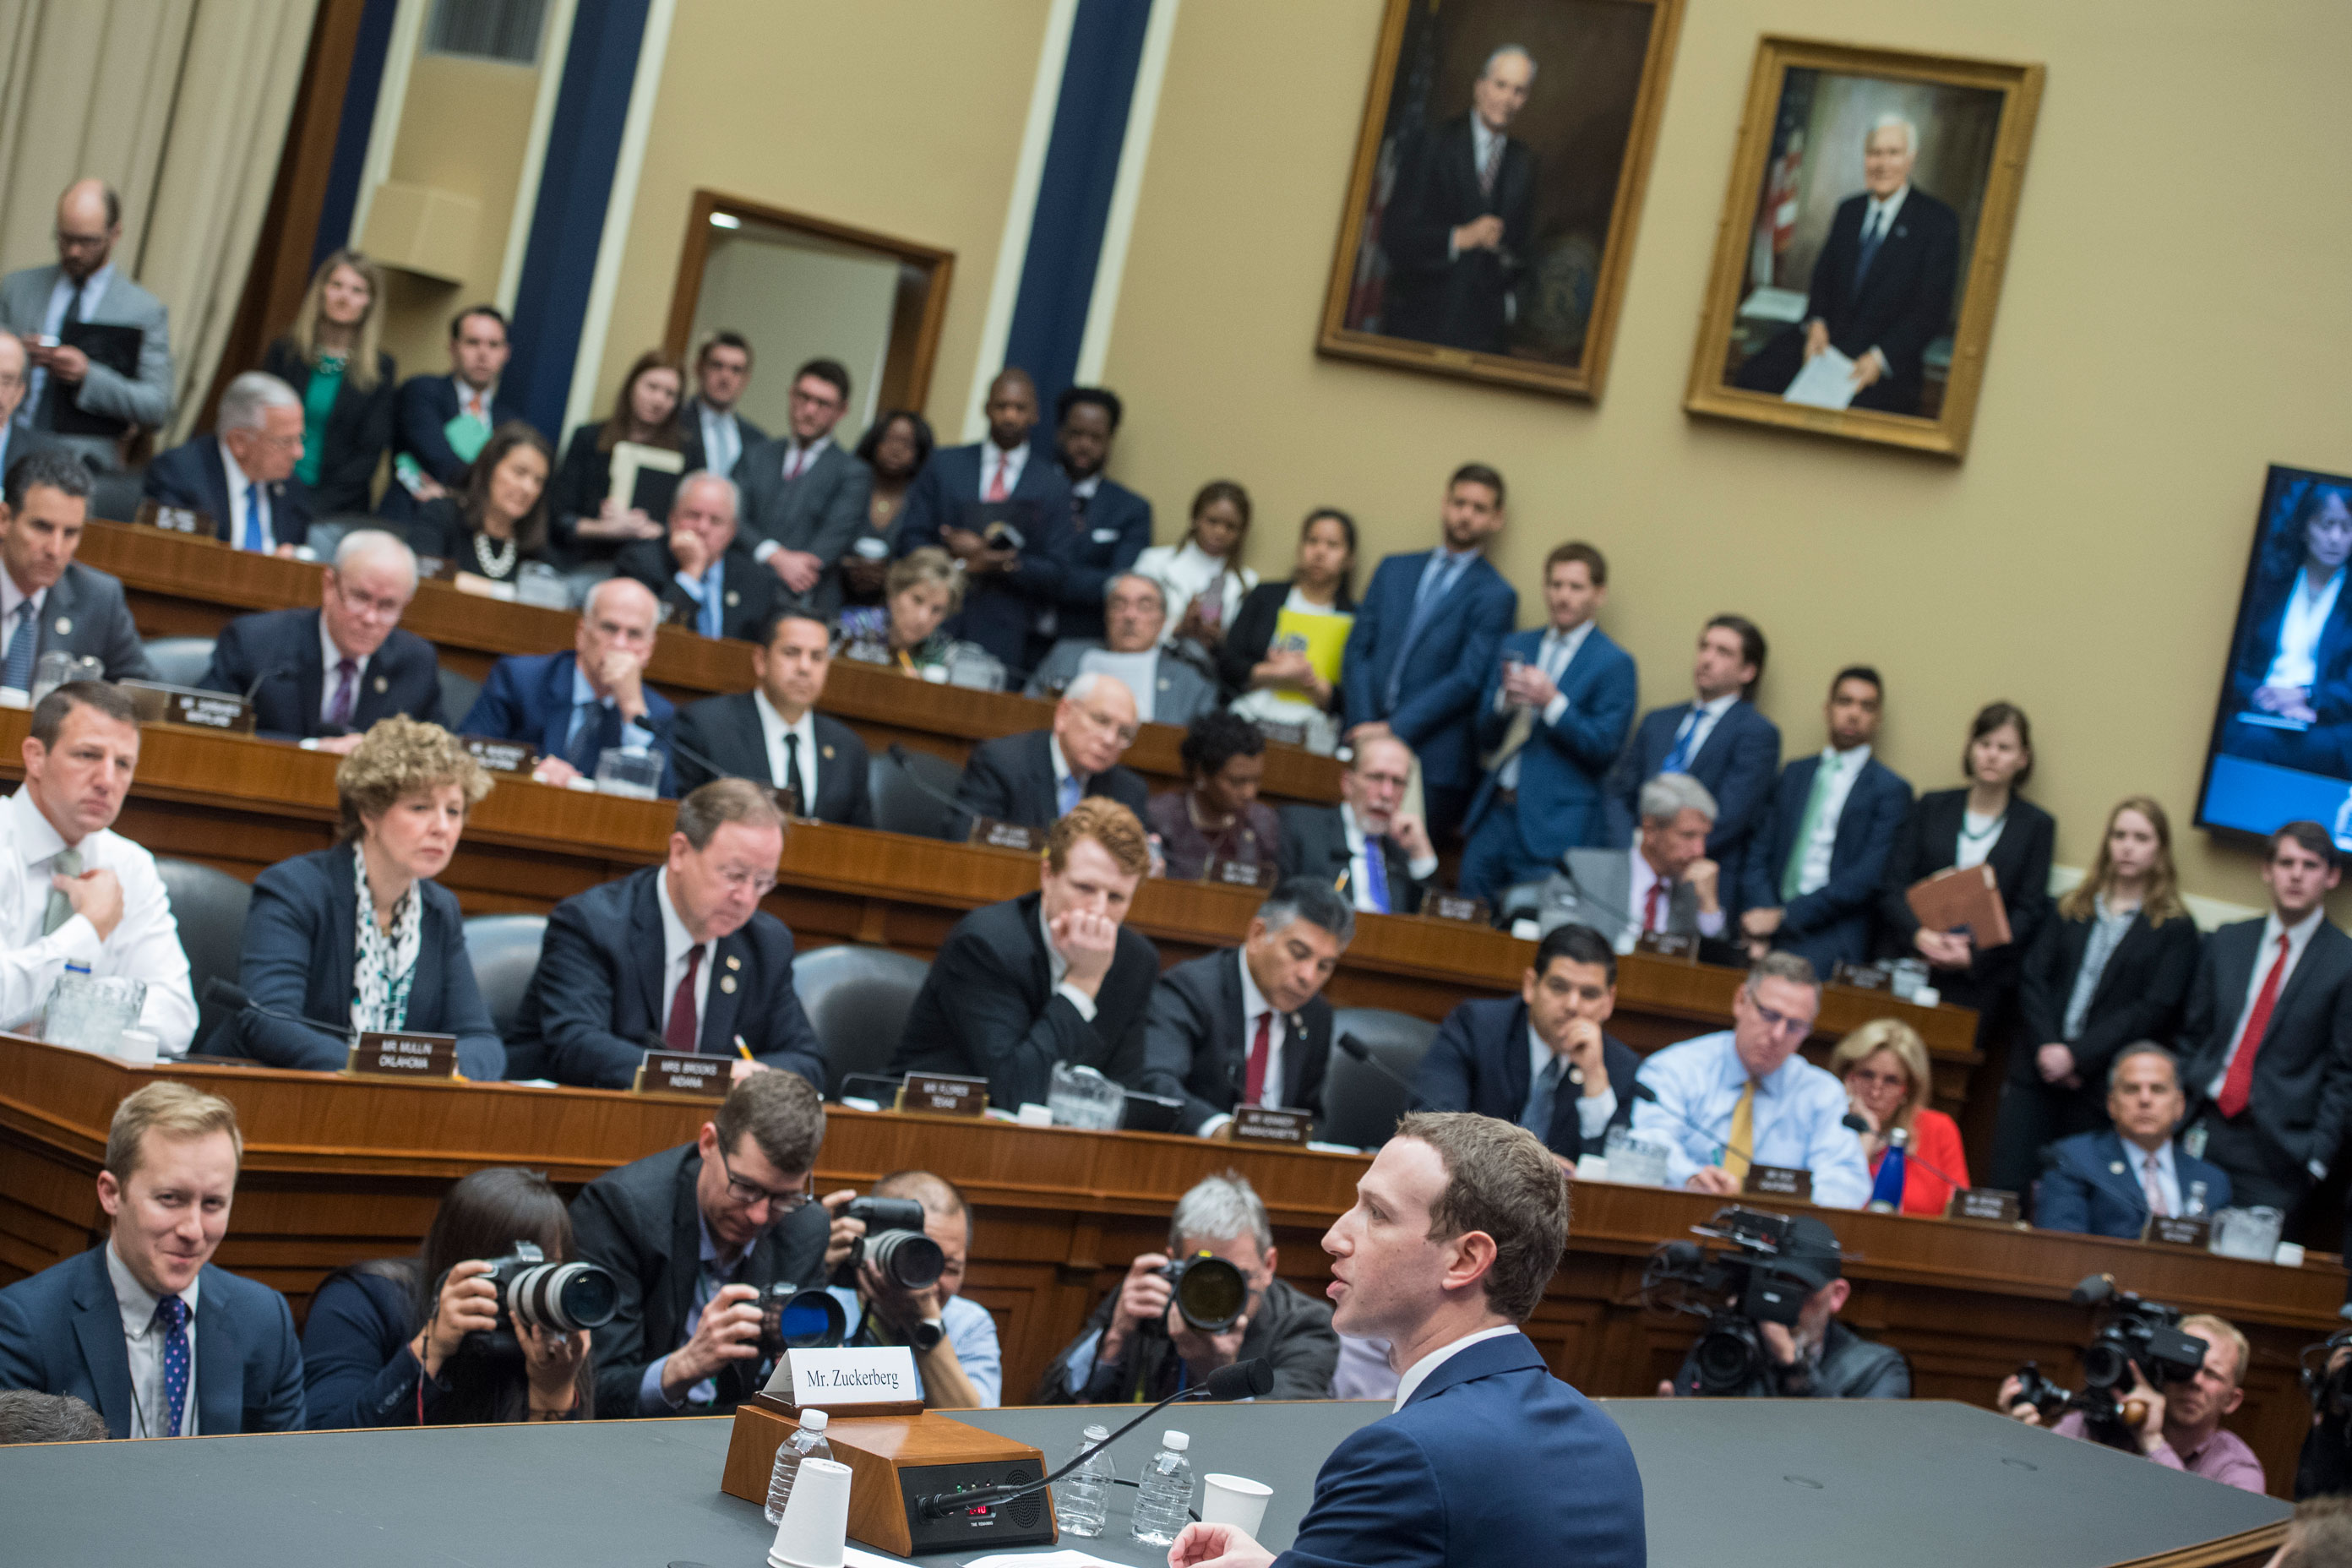 'Sure looks like Zuckerberg lied to Congress': Democrat on Facebook report